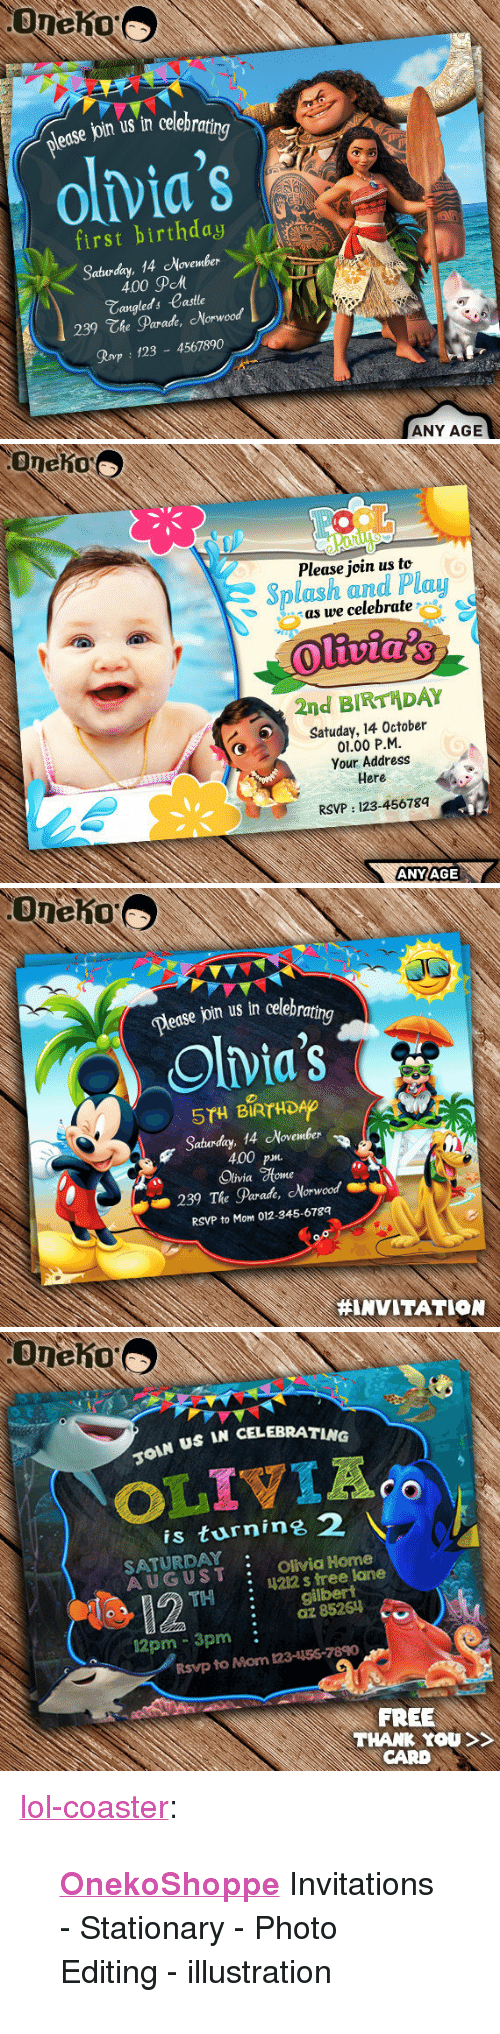 """Birthday, Lol, and Tumblr: edse join us in celebra  olvia's  first birthday  Sabuday, 14 November  \  400 дем  Tangleds Castle  239 The Parade, Norwood  Rovp 123 4567890  ANY AGE   Oneho  Please join us to  Splash and Plau  as we celebrate  2nd BIRTHDAY  Satuday, 14 October  01.00 P.M  Your Address  Here  RSVP: 123-45678q  ANYAGE   Dease join us in celebra  ing  Olvia's  5TH BIRTHDAO  Saturday, 14 November  400 p  Olivia %one  239 The Parade, Morwood  RSVP to Mom 012-345-6789  #INVITATION   US IN CELEBRATING  is turnine 2  SATURDAY  AUGUST Olivia Home  : 4212 s tree lane  THgilbert  :az 85261  12pm 3pm:  Rsvp to Mom 123-156-7890  FREE  THANK YOU  CARD <p><a href=""""http://lol-coaster.tumblr.com/post/161981484442/onekoshoppe-invitations-stationary-photo"""" class=""""tumblr_blog"""">lol-coaster</a>:</p><blockquote><p><b><a href=""""https://www.etsy.com/shop/OnekoShoppe"""">  OnekoShoppe</a></b> Invitations - Stationary - Photo Editing - illustration</p></blockquote>"""